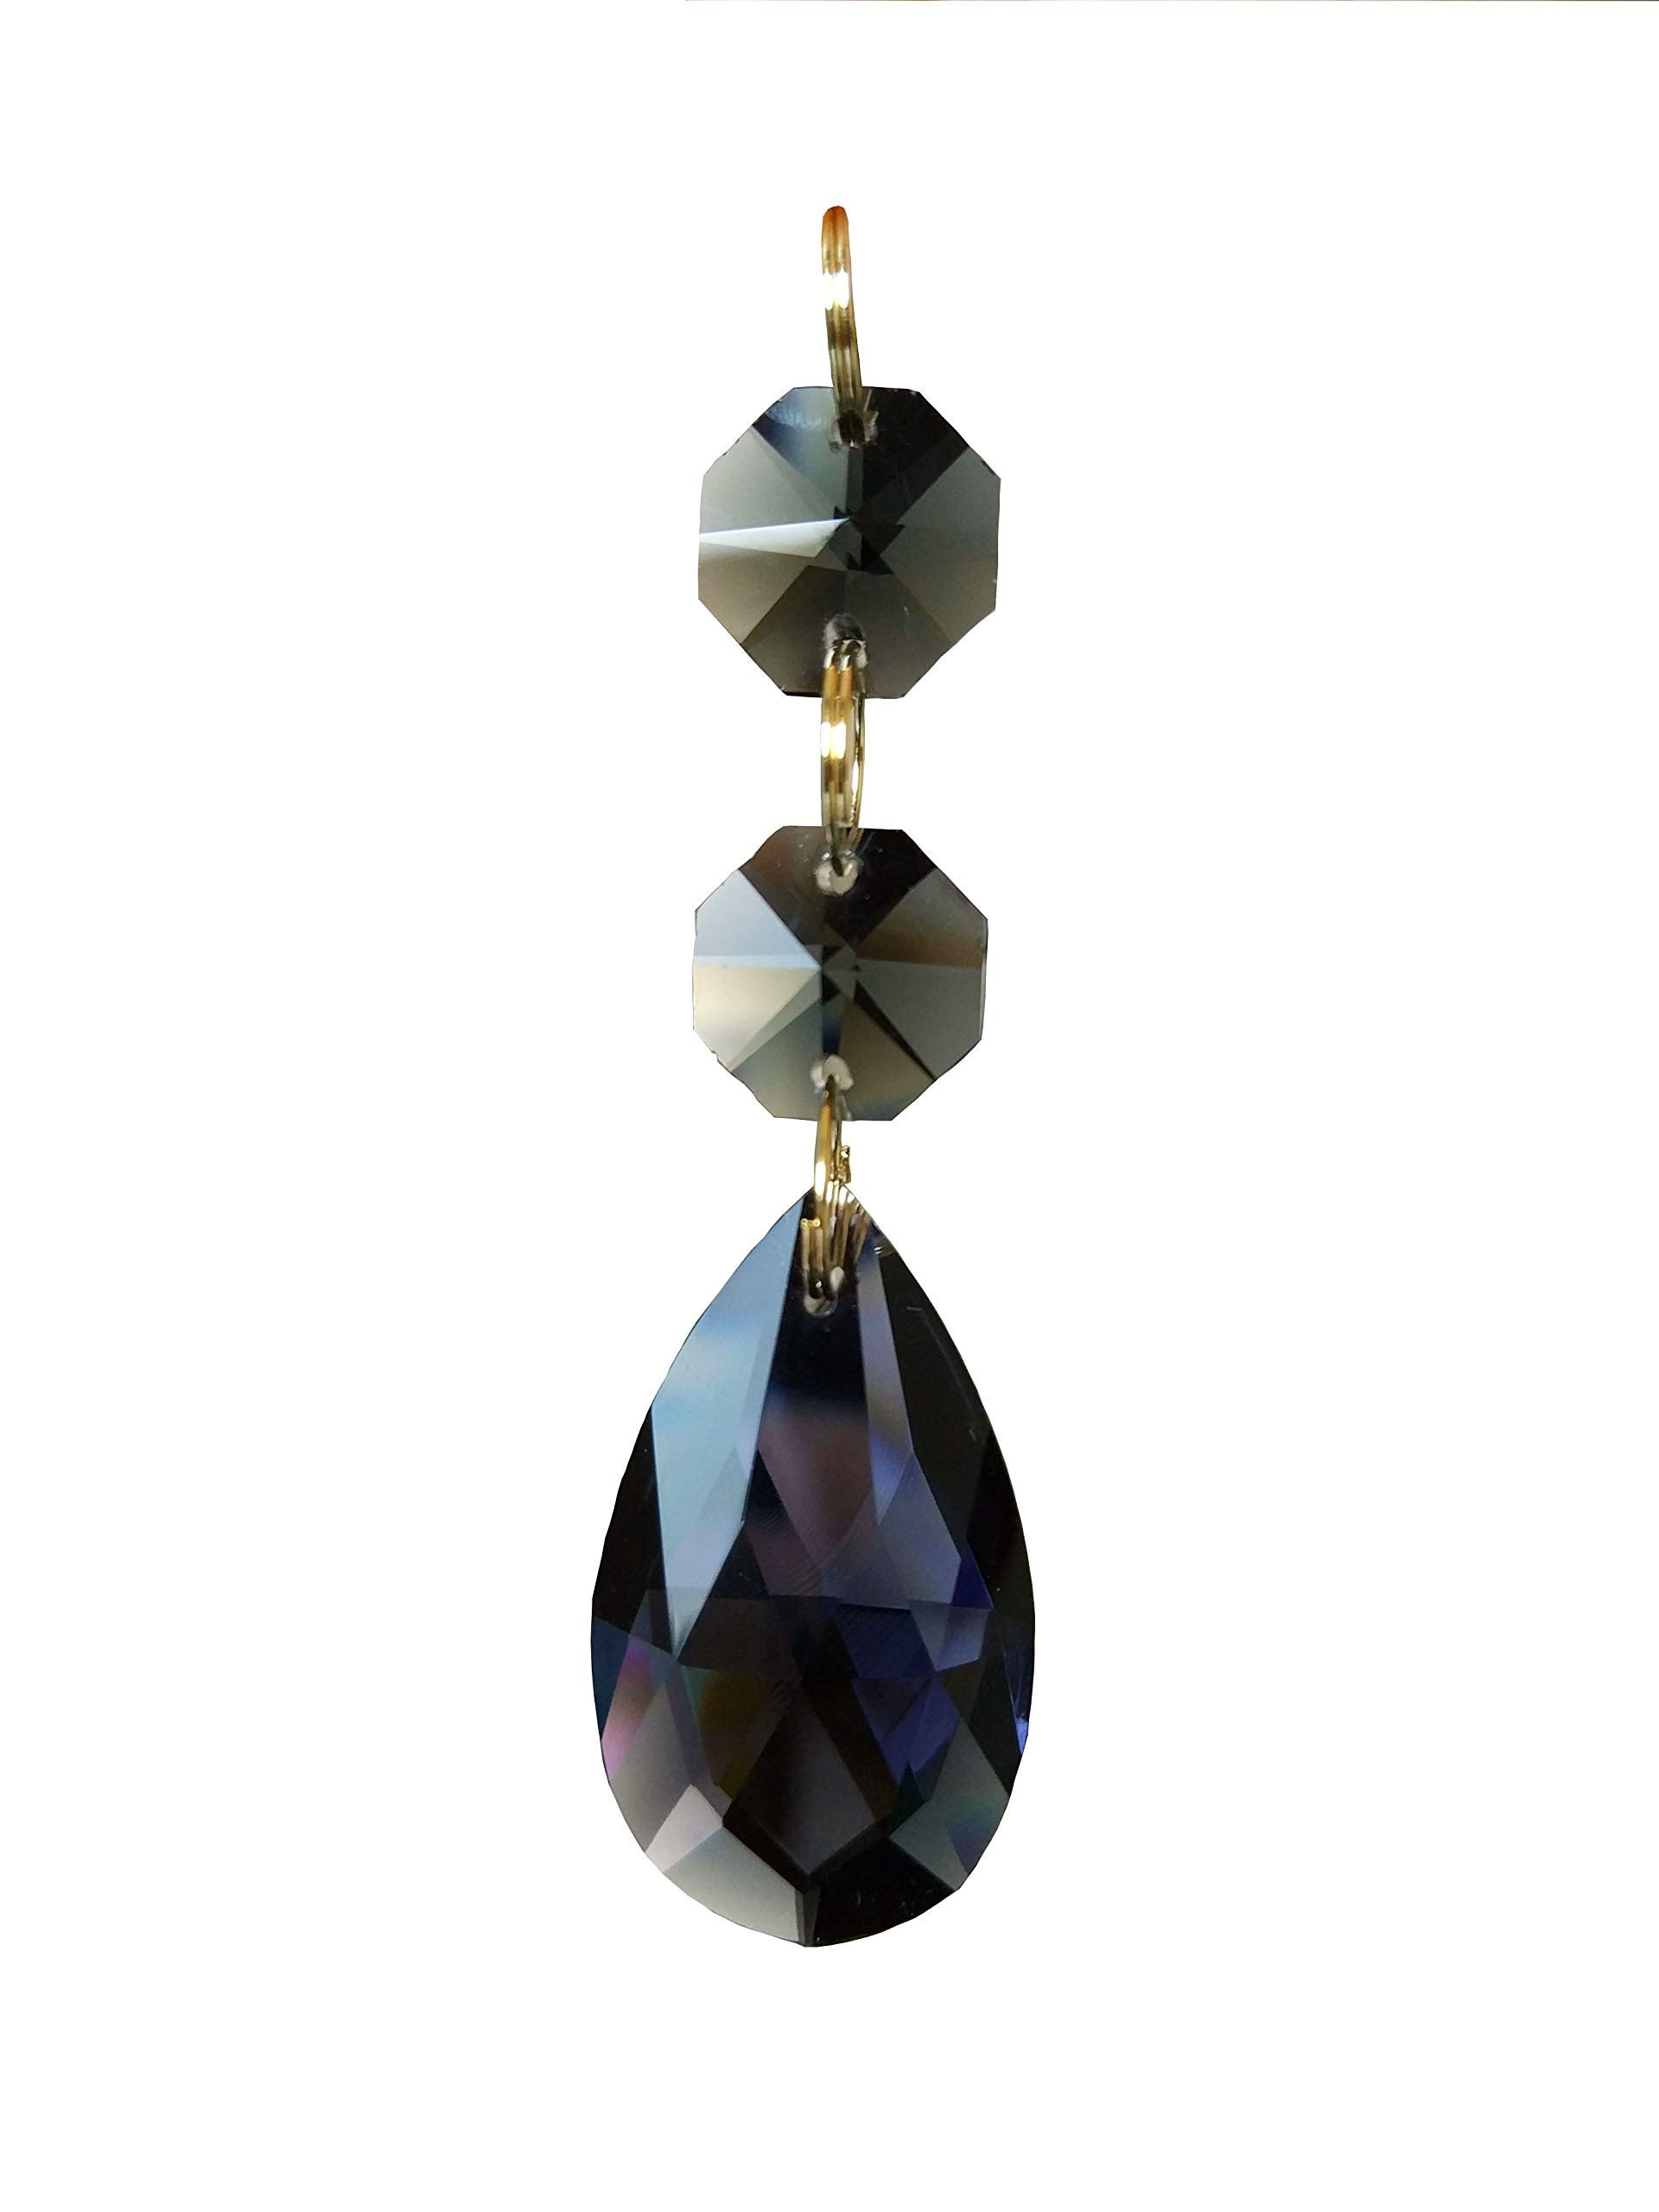 38mm Teardrop Pendants Chandelier Crystal Prisms Pendants Glass Pendants Beads, Pack of 10 (Transparent Black)